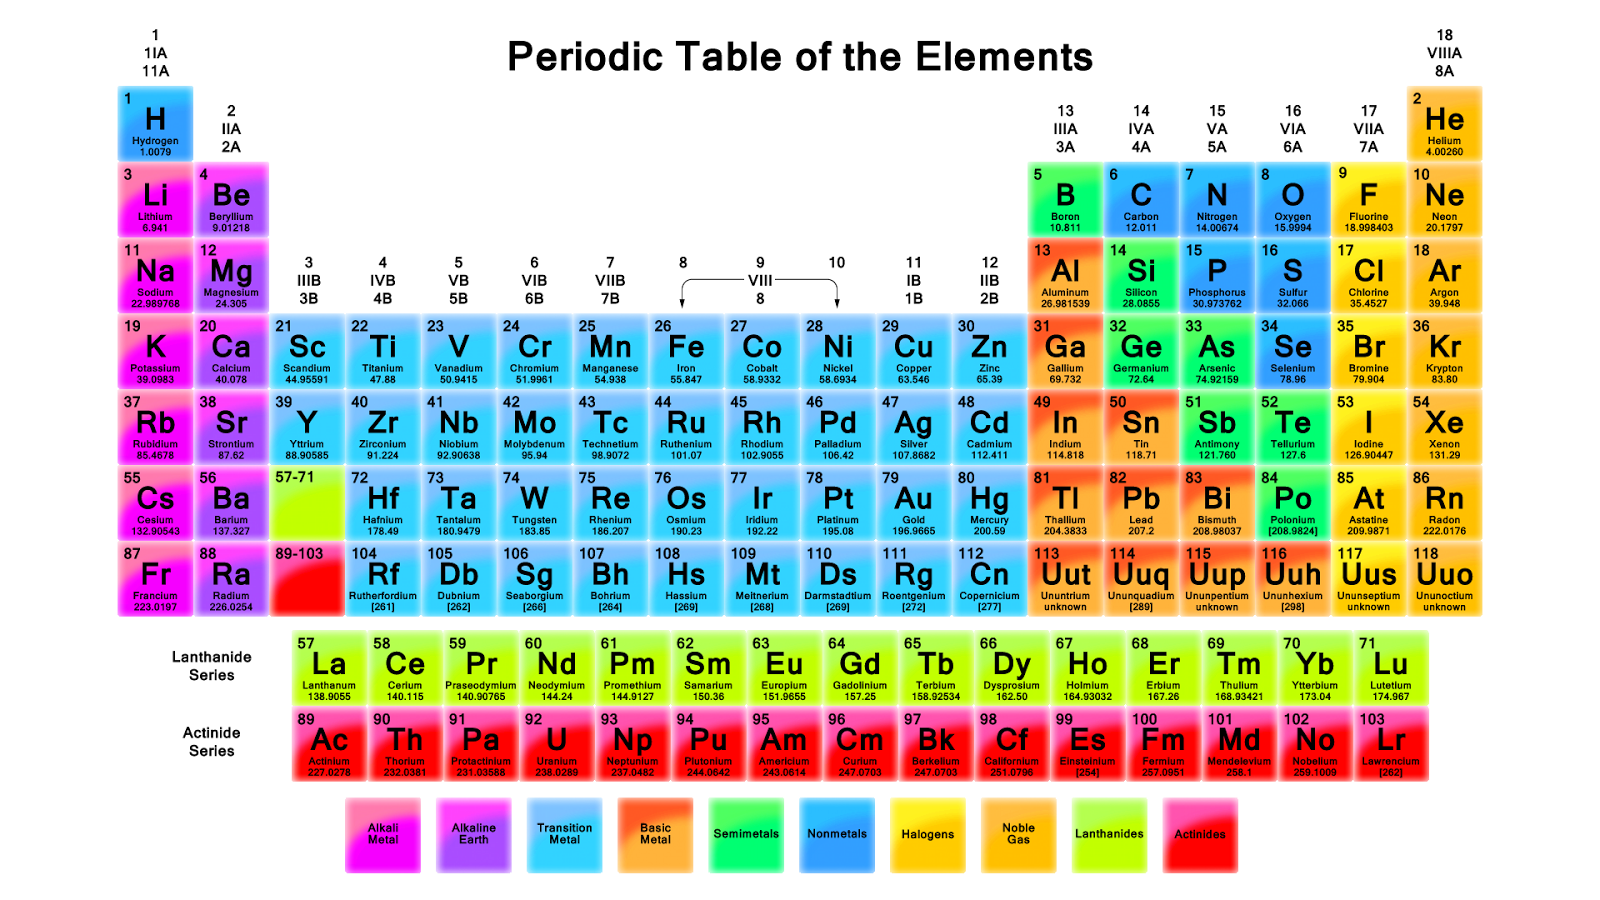 Mrs kettner 39 s science class 2013 11 10 for 118 periodic table